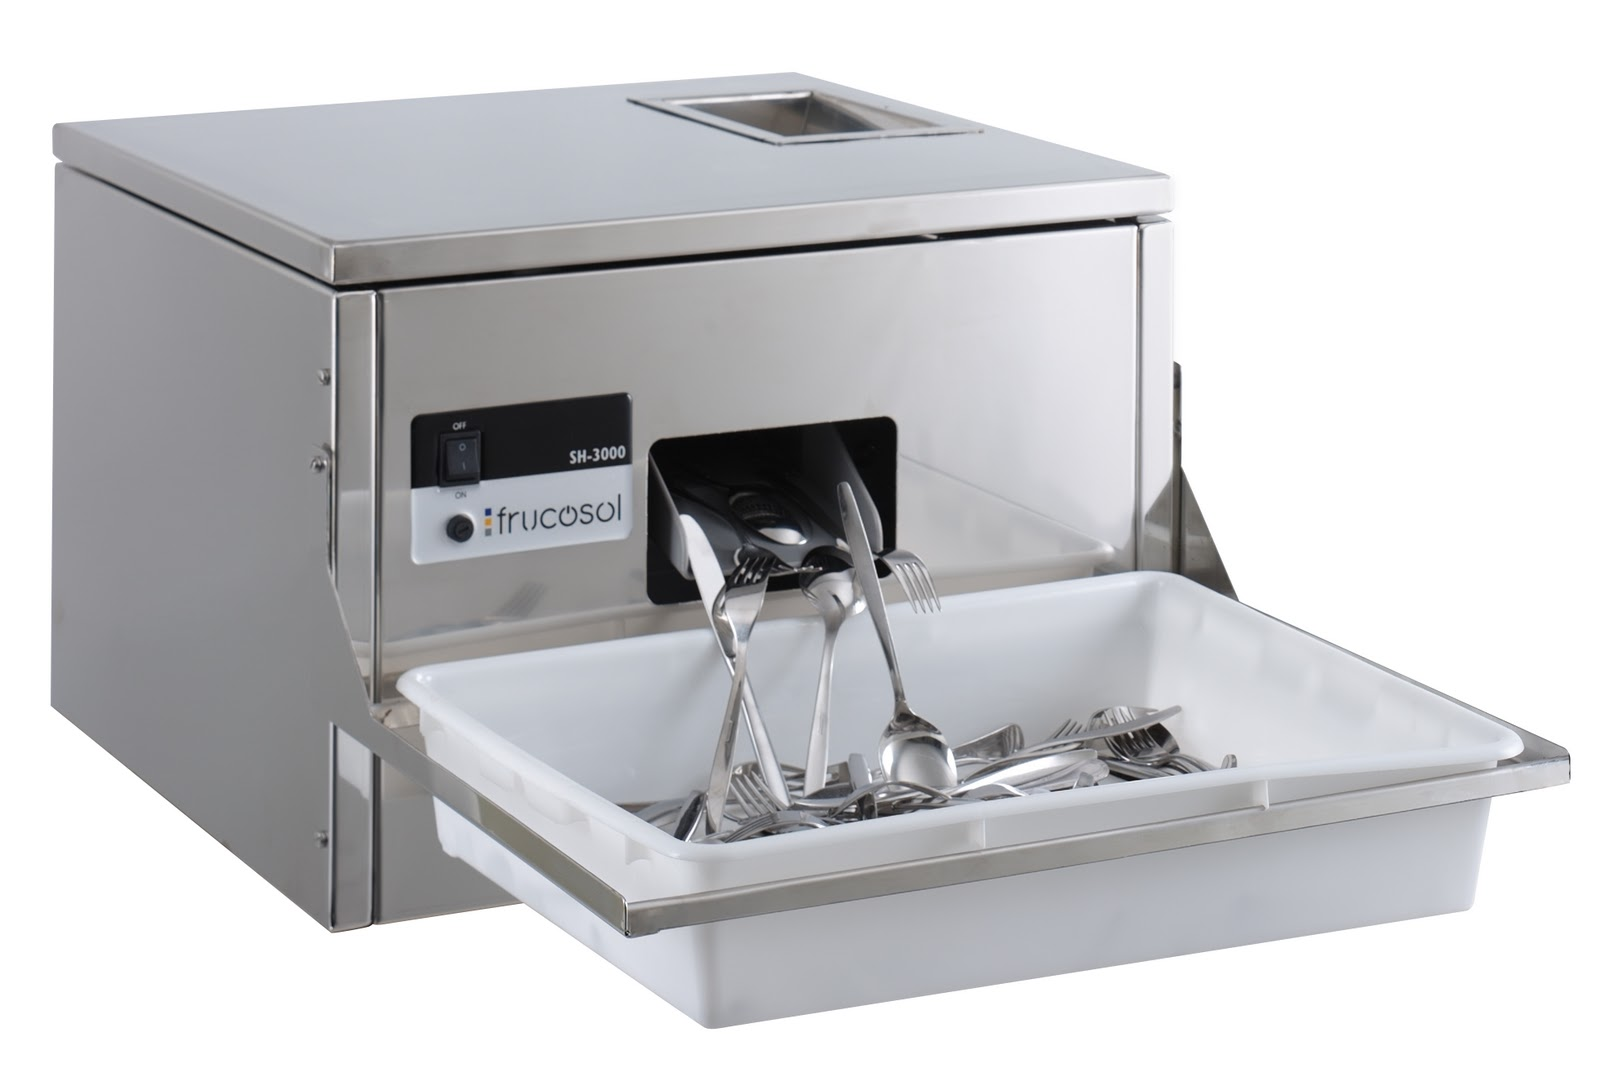 cutlery polishing machines our polishers. Black Bedroom Furniture Sets. Home Design Ideas